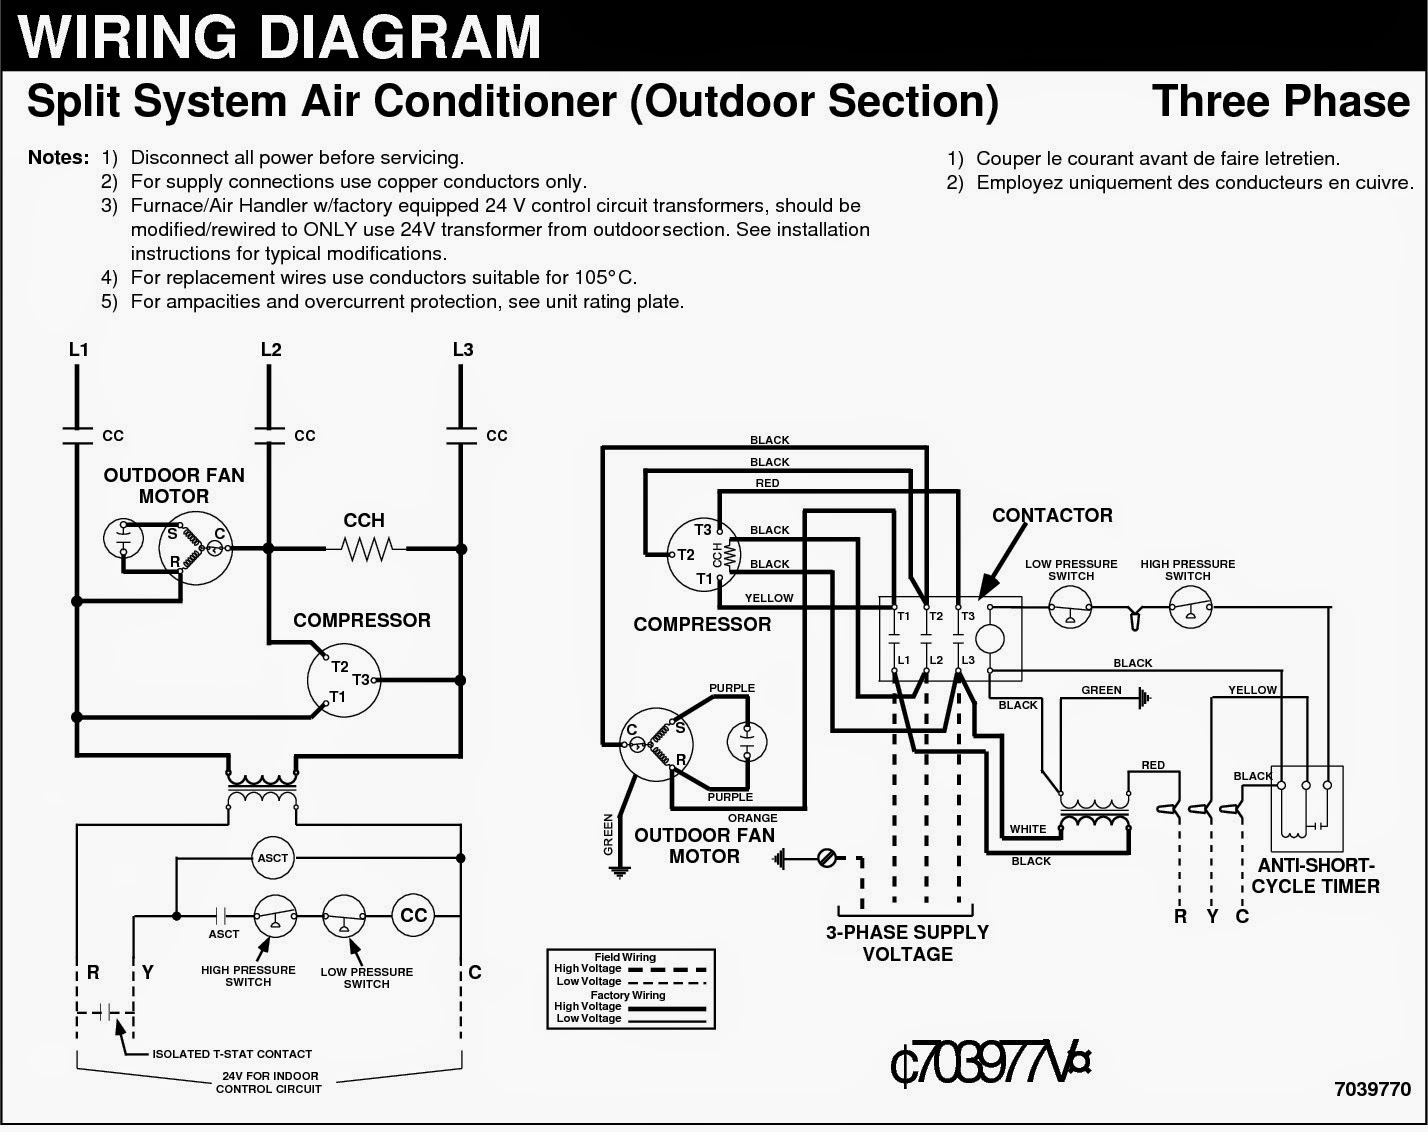 3+phase electrical wiring diagrams for air conditioning systems part two auto ac wiring diagram at readyjetset.co